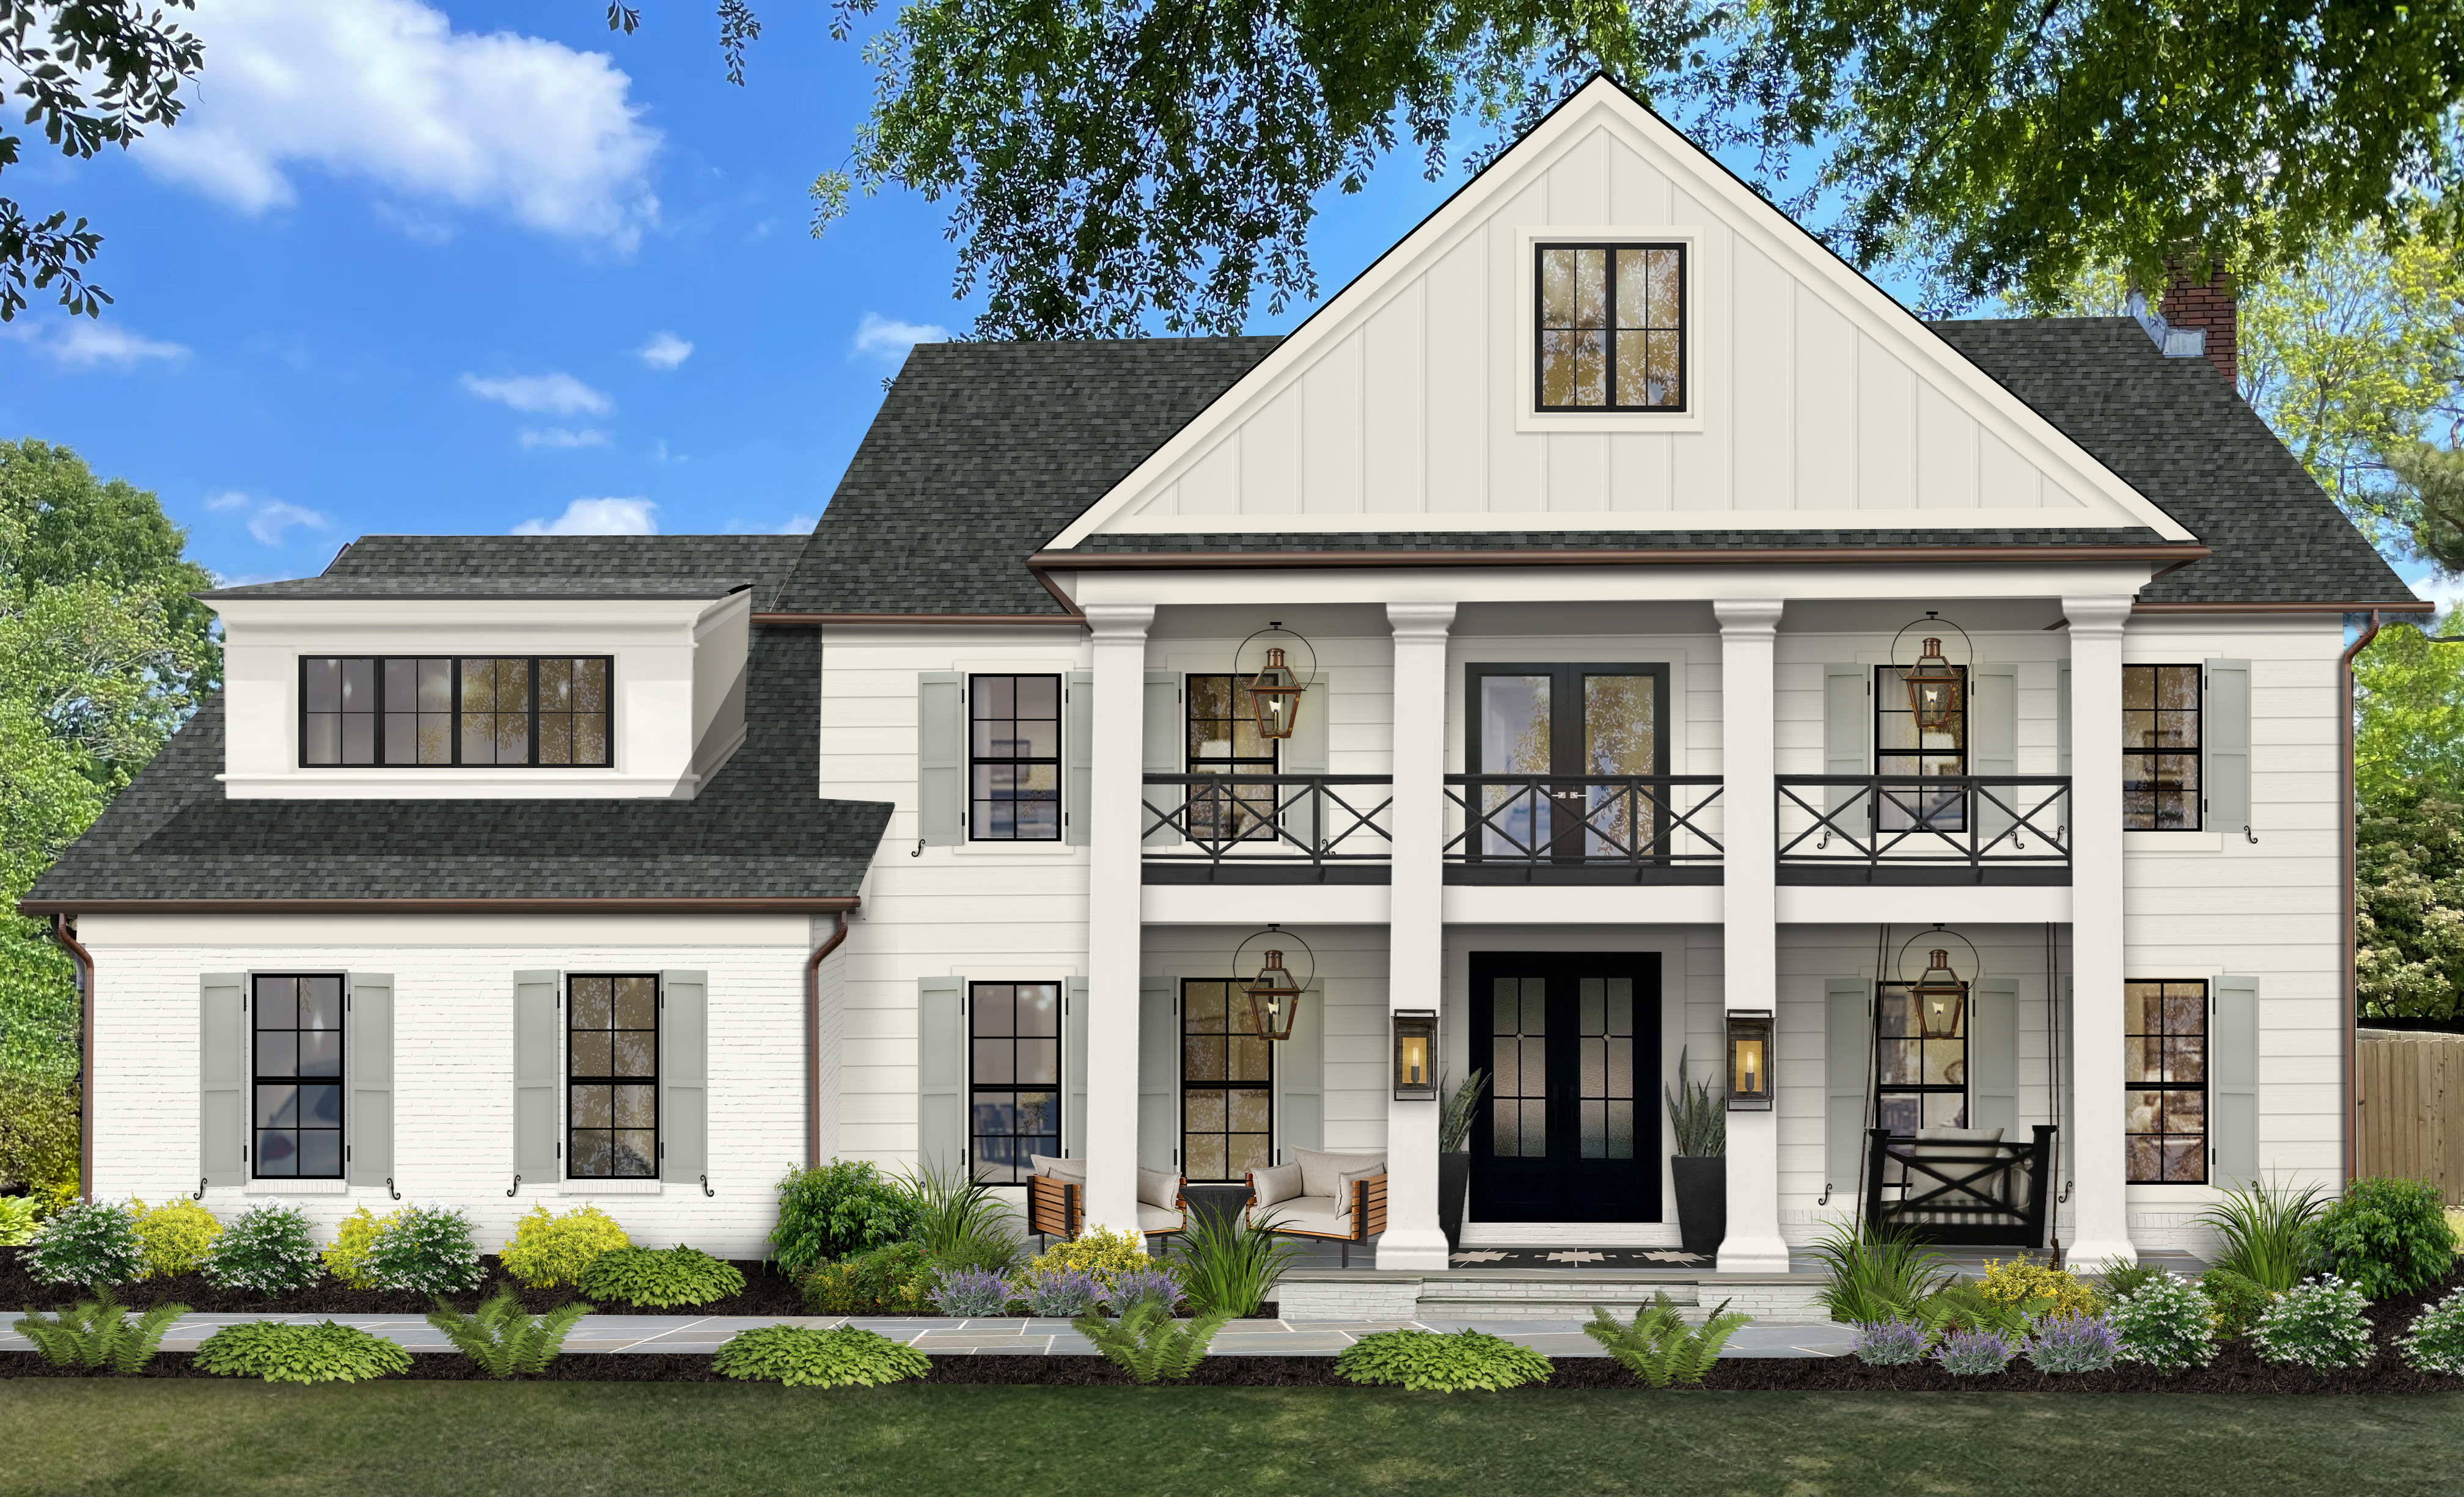 Virtual design of a traditional home painted in Seapearl with shutters in Seahaze